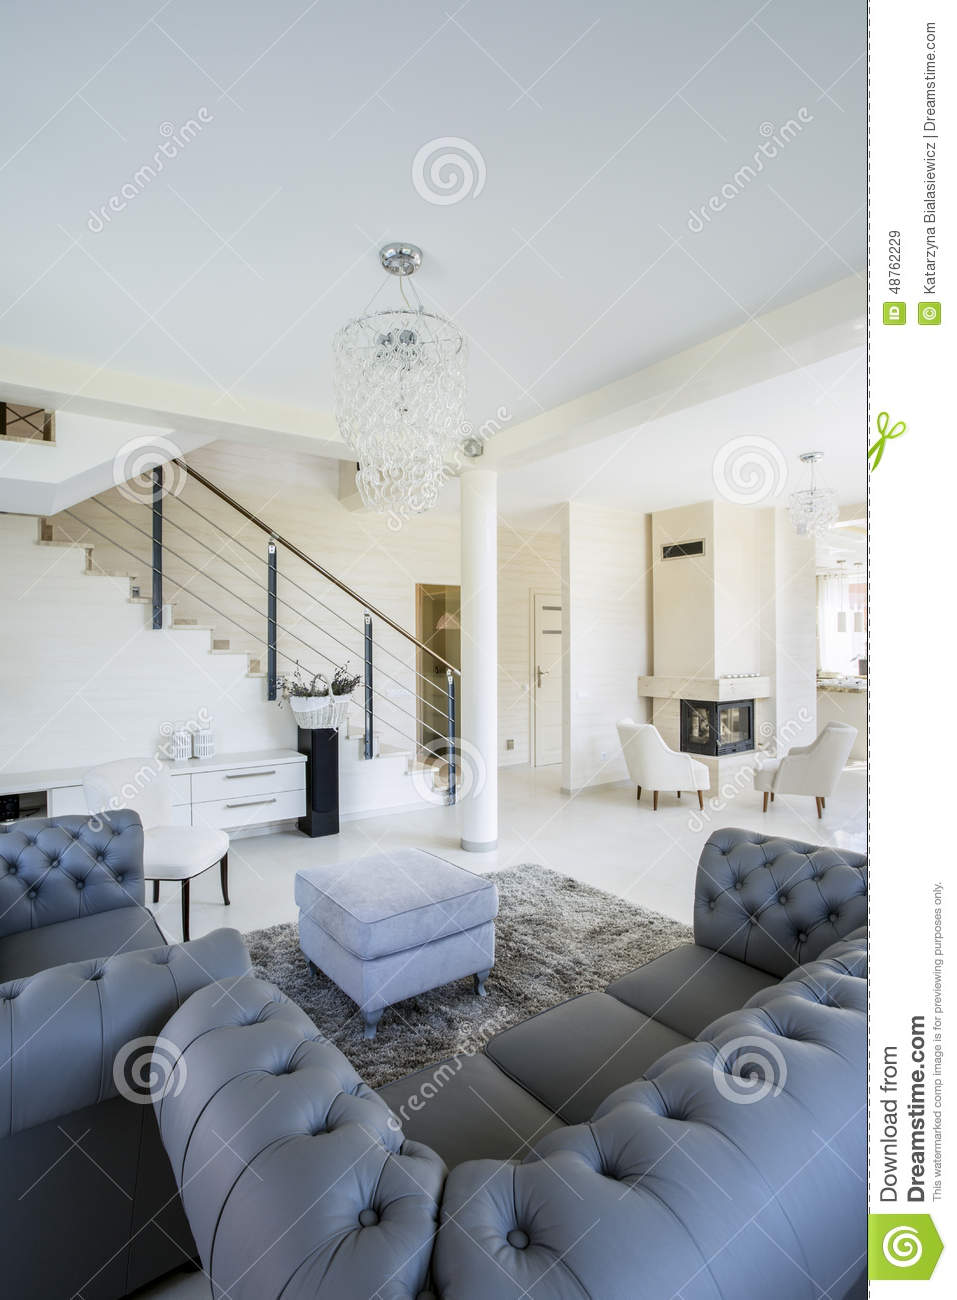 Open space in modern designed house stock photo for Open space inside a building